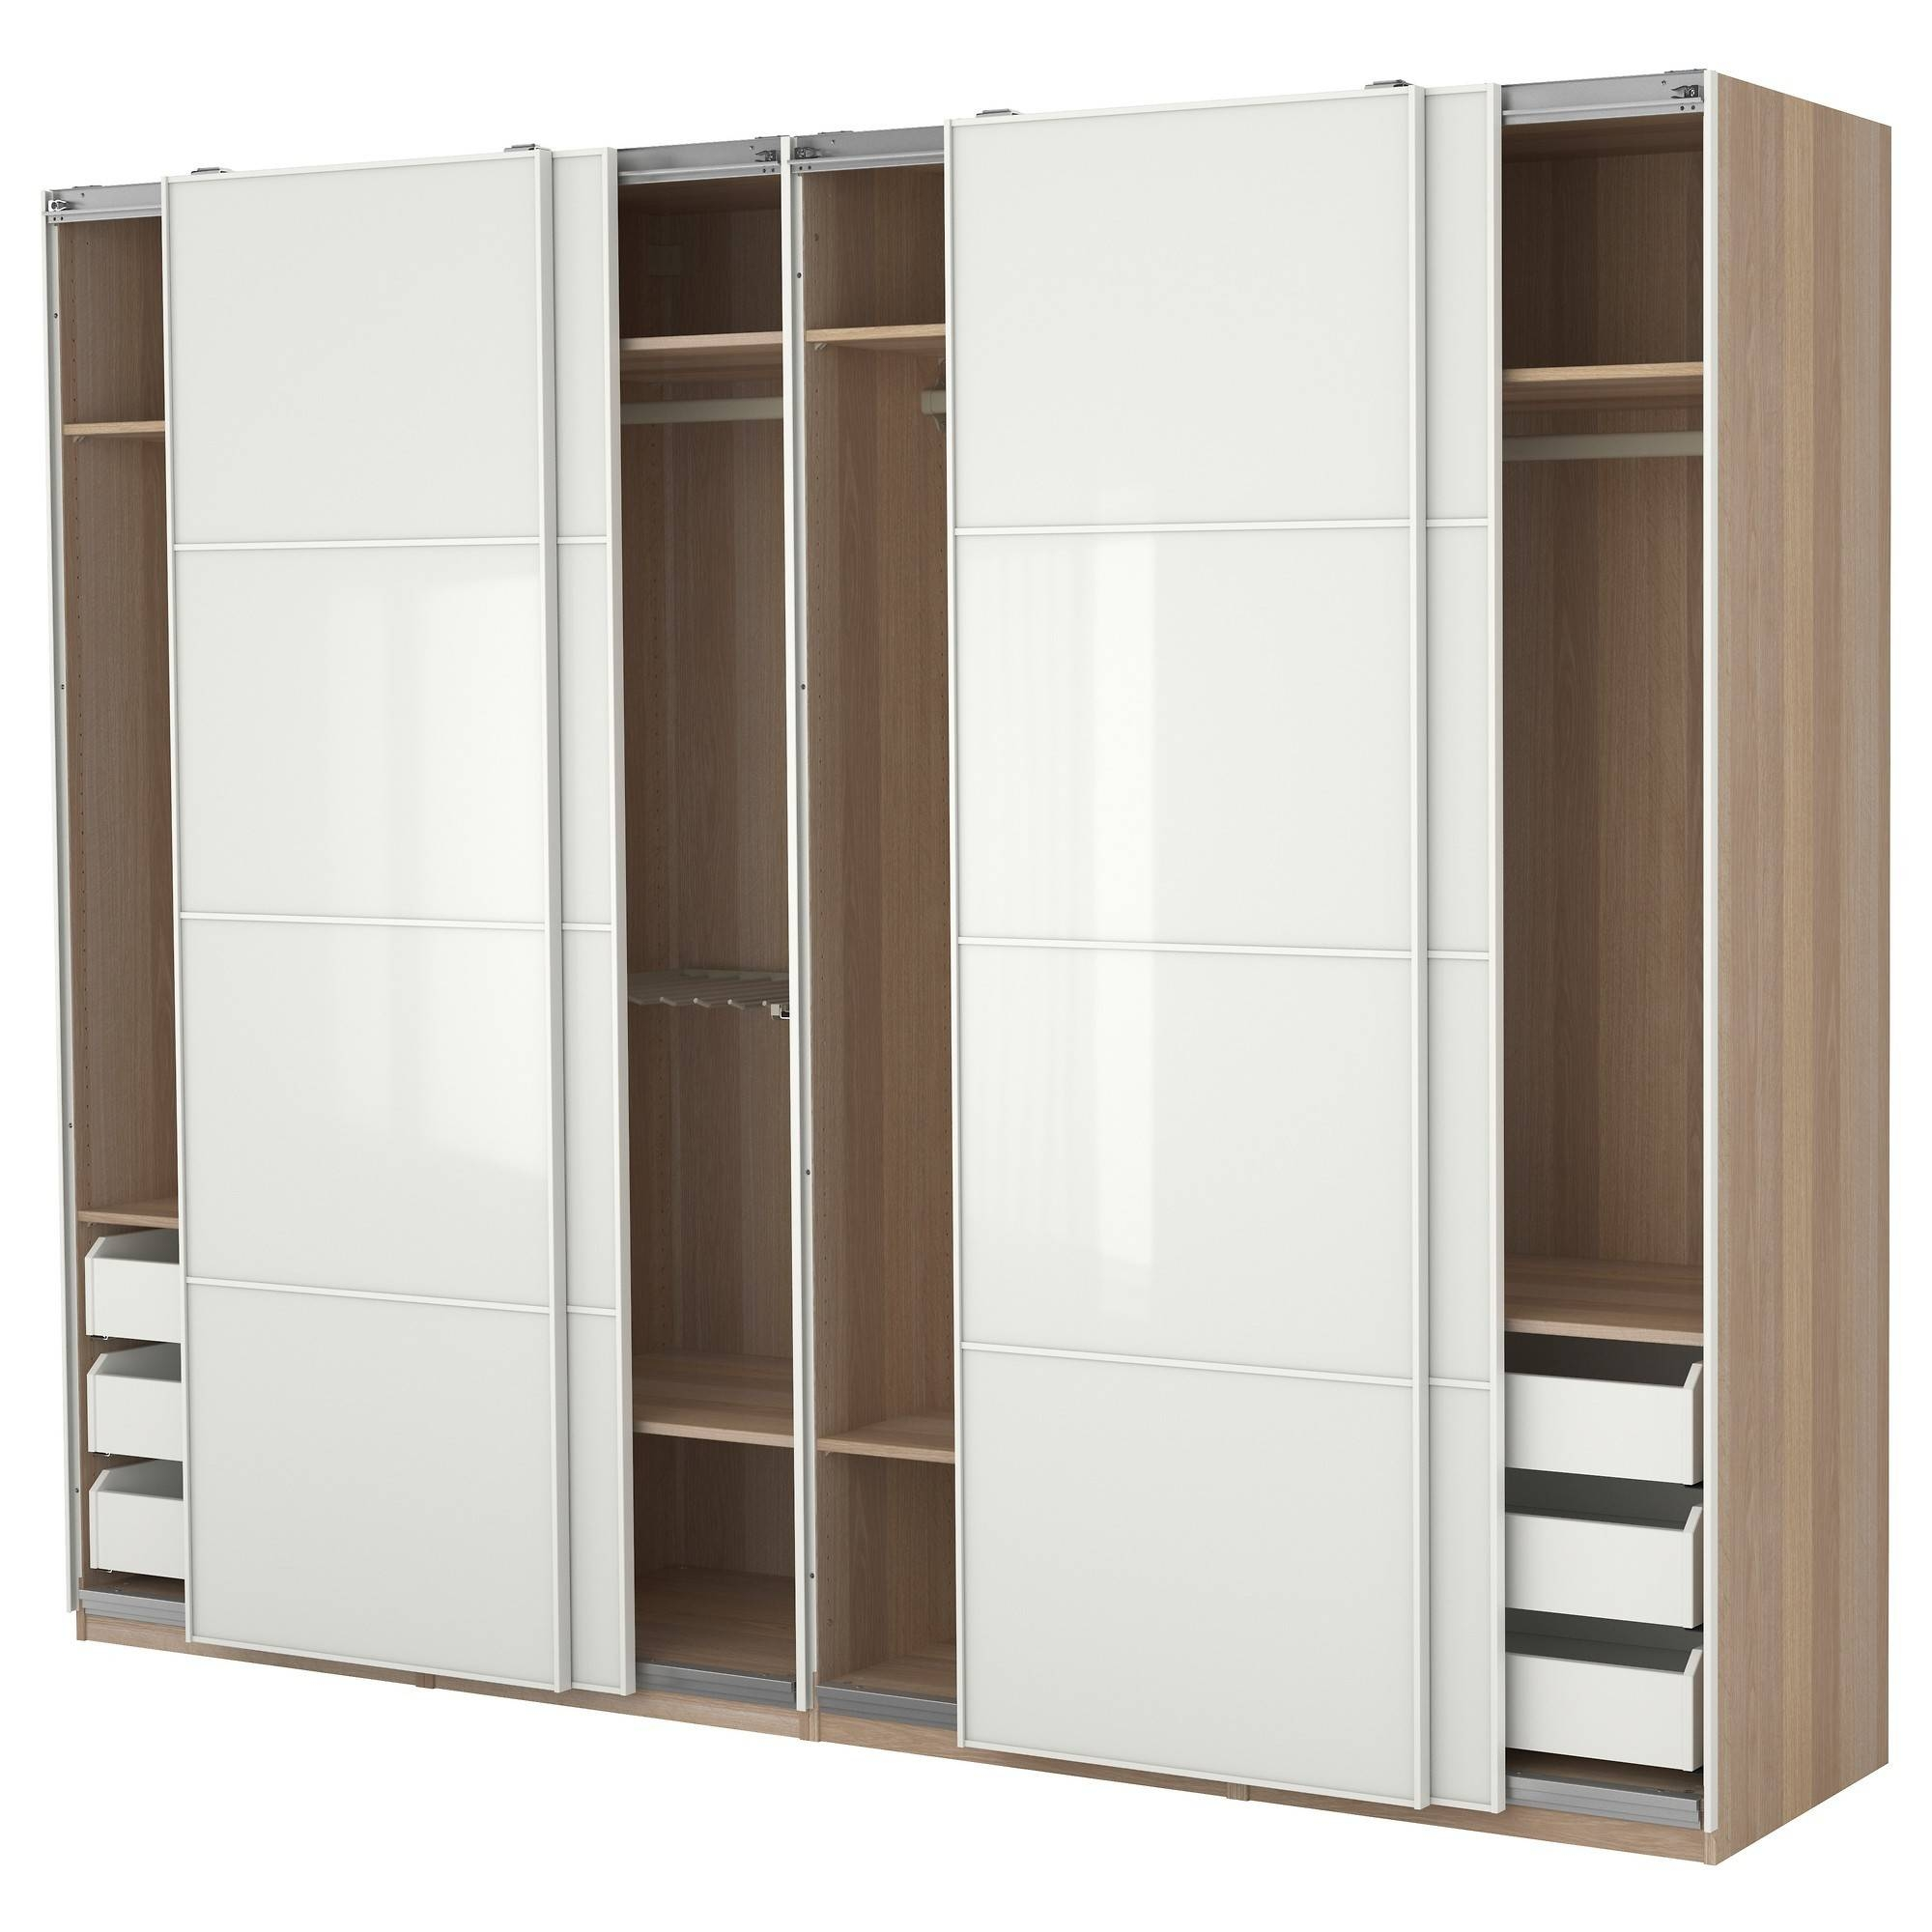 Cheap Closet Doors - Karinnelegault in Cheap Wood Wardrobes (Image 5 of 15)